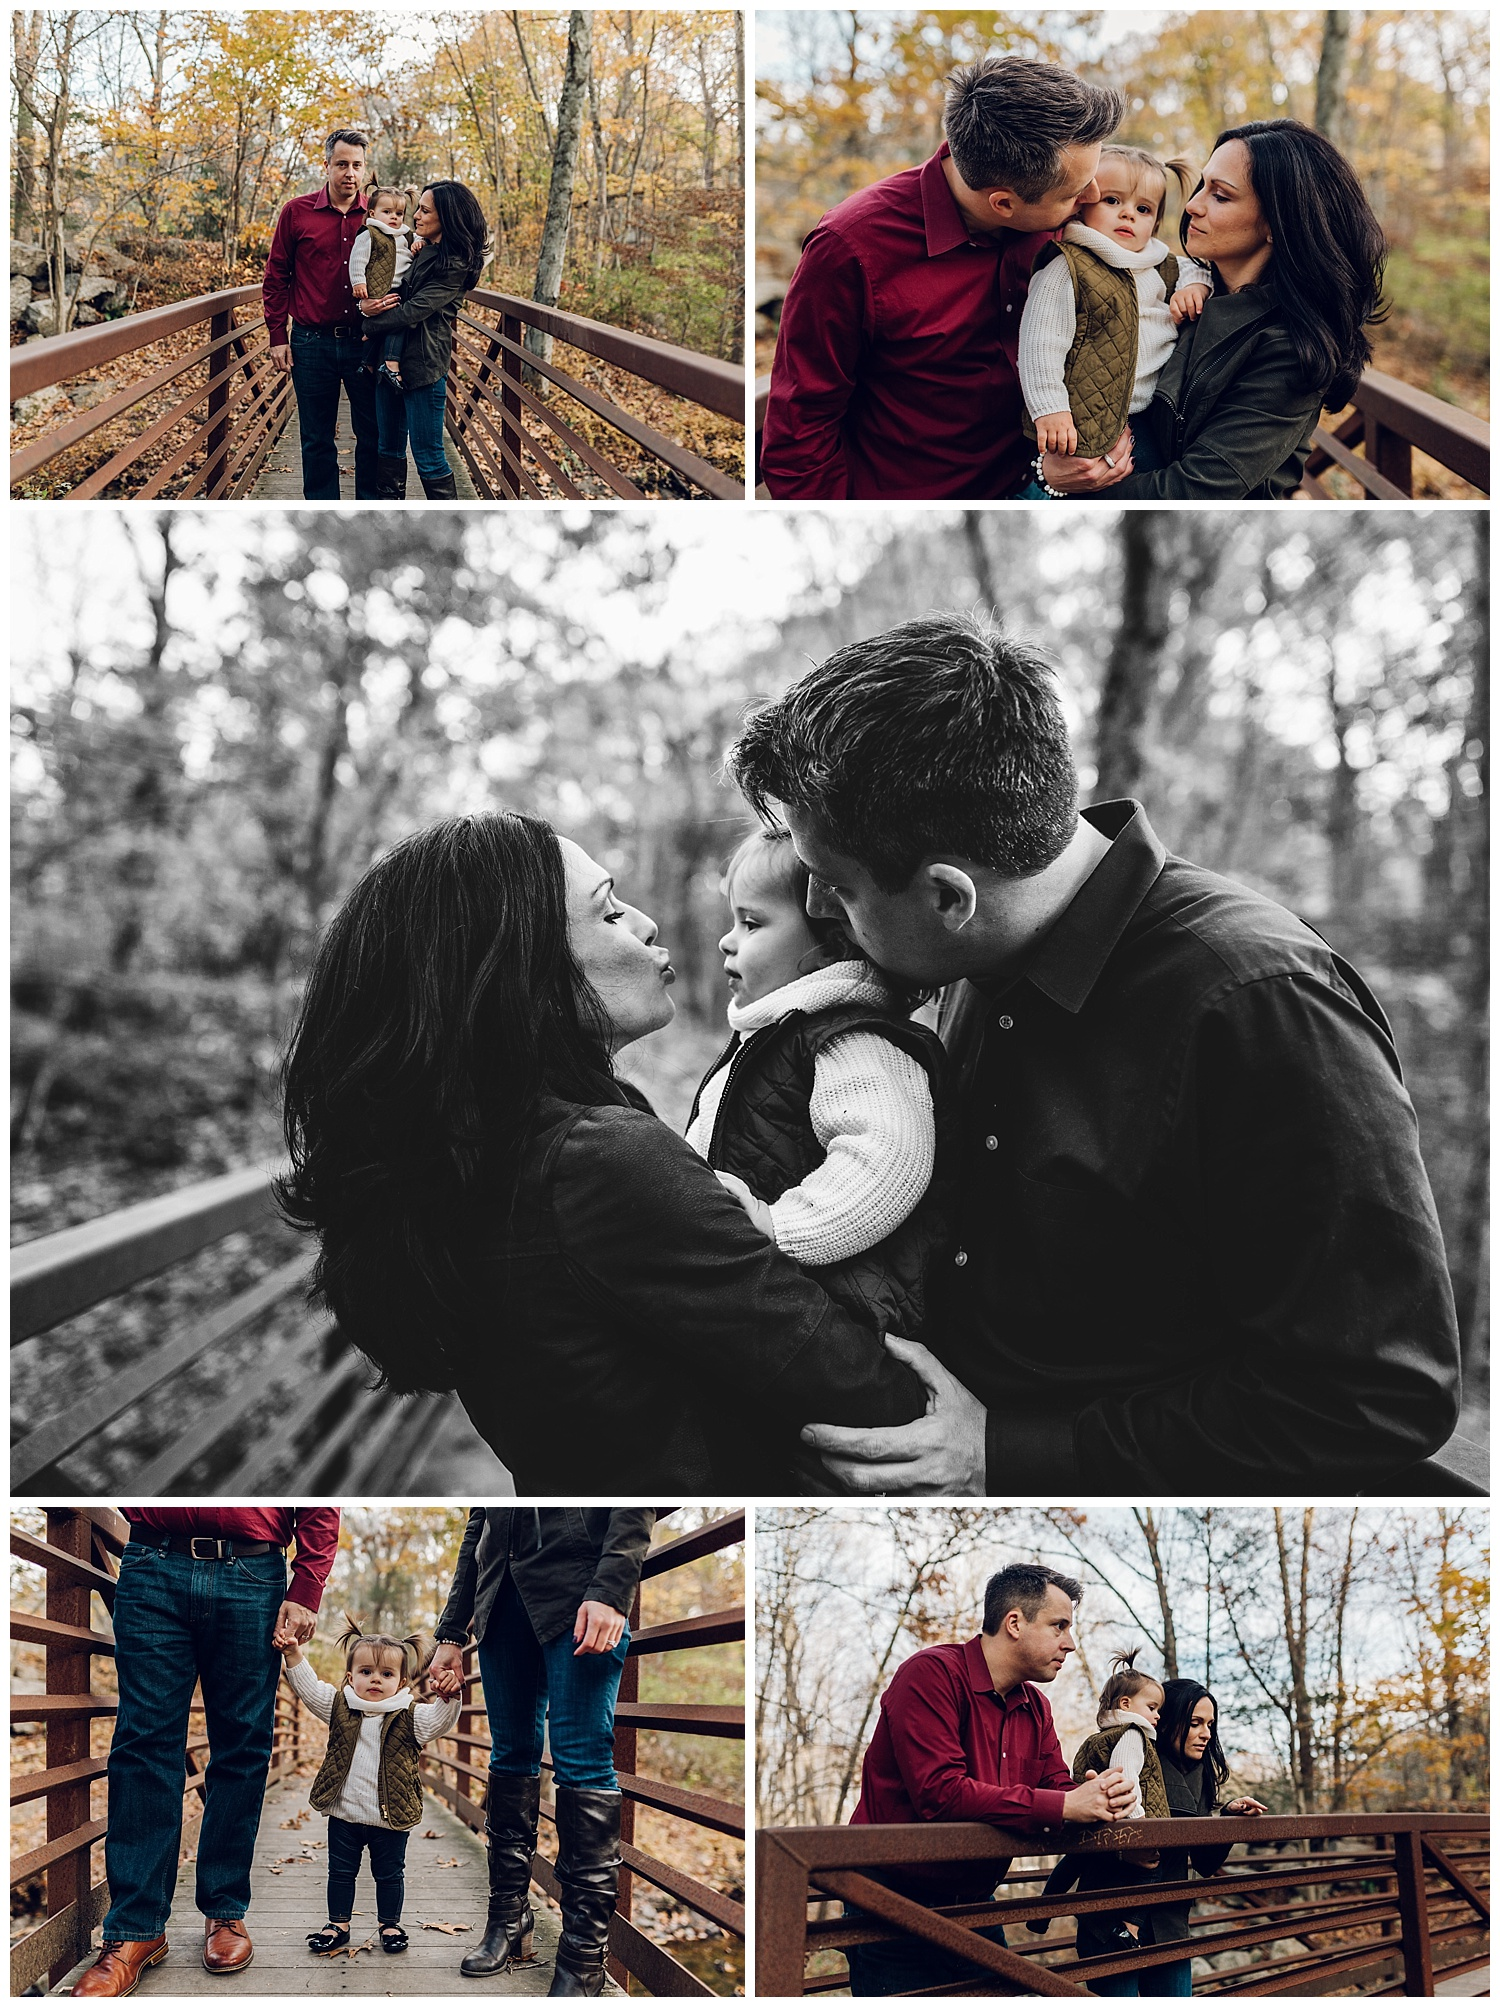 connecticut family on bridge by laura barr photography